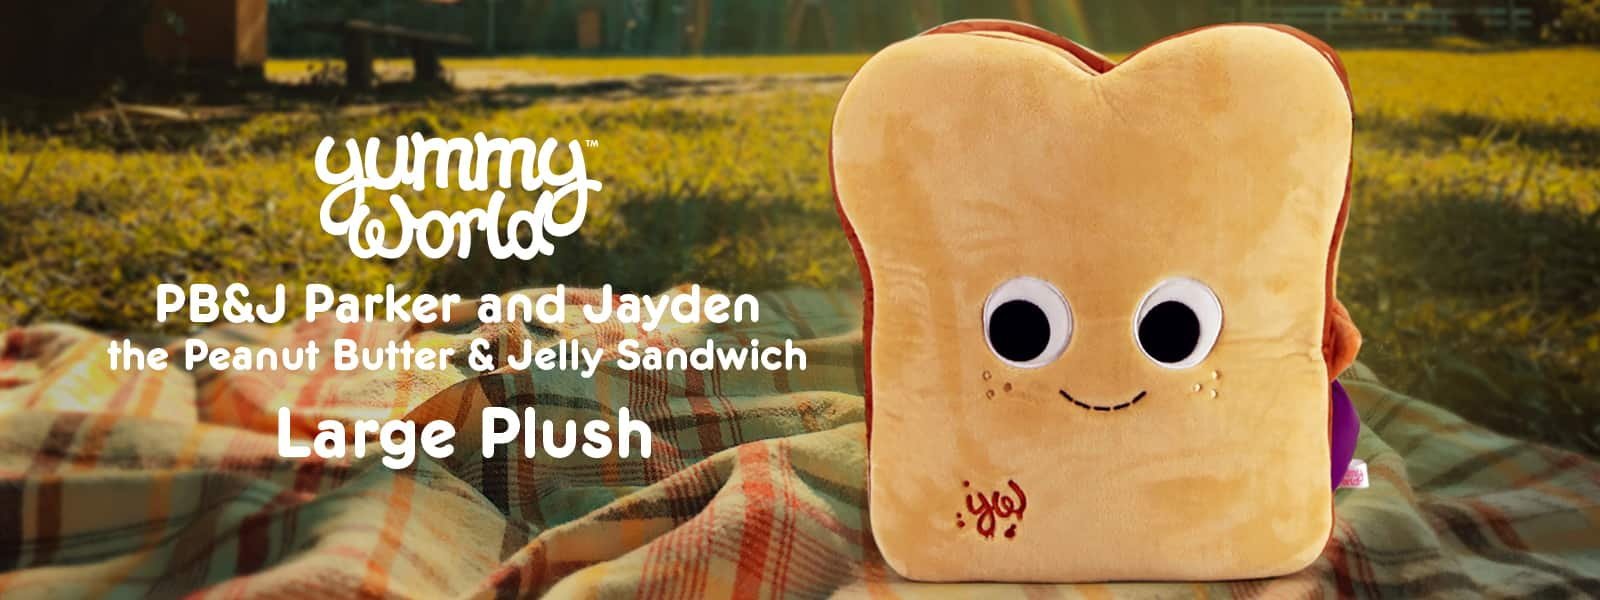 NEW Yummy World Peanut Butter and Jelly PB&J Sandwich Plush Toy by Kidrobot